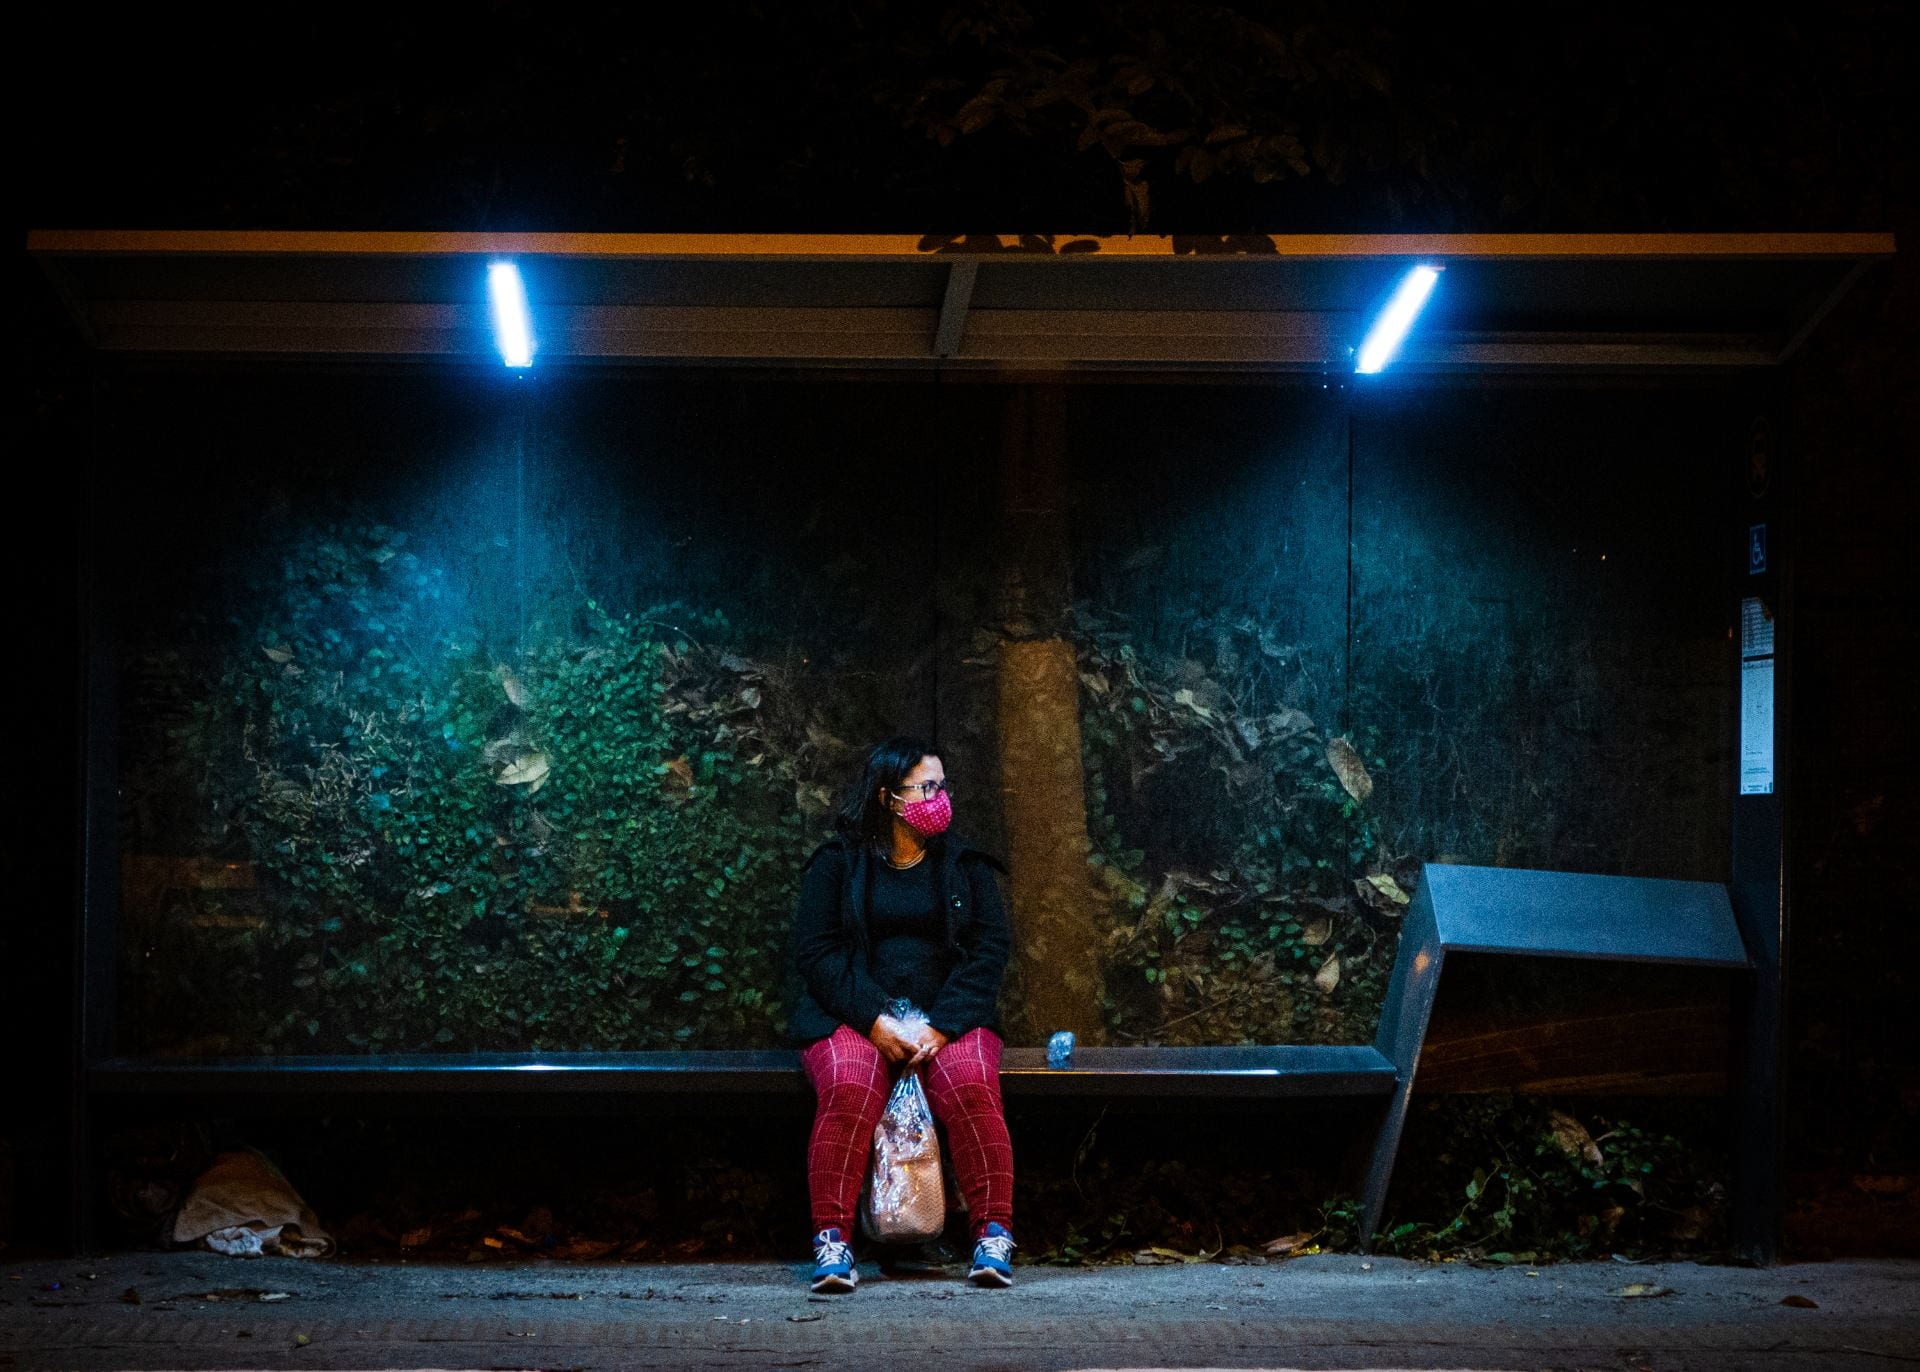 woman in red mask waiting for a bus